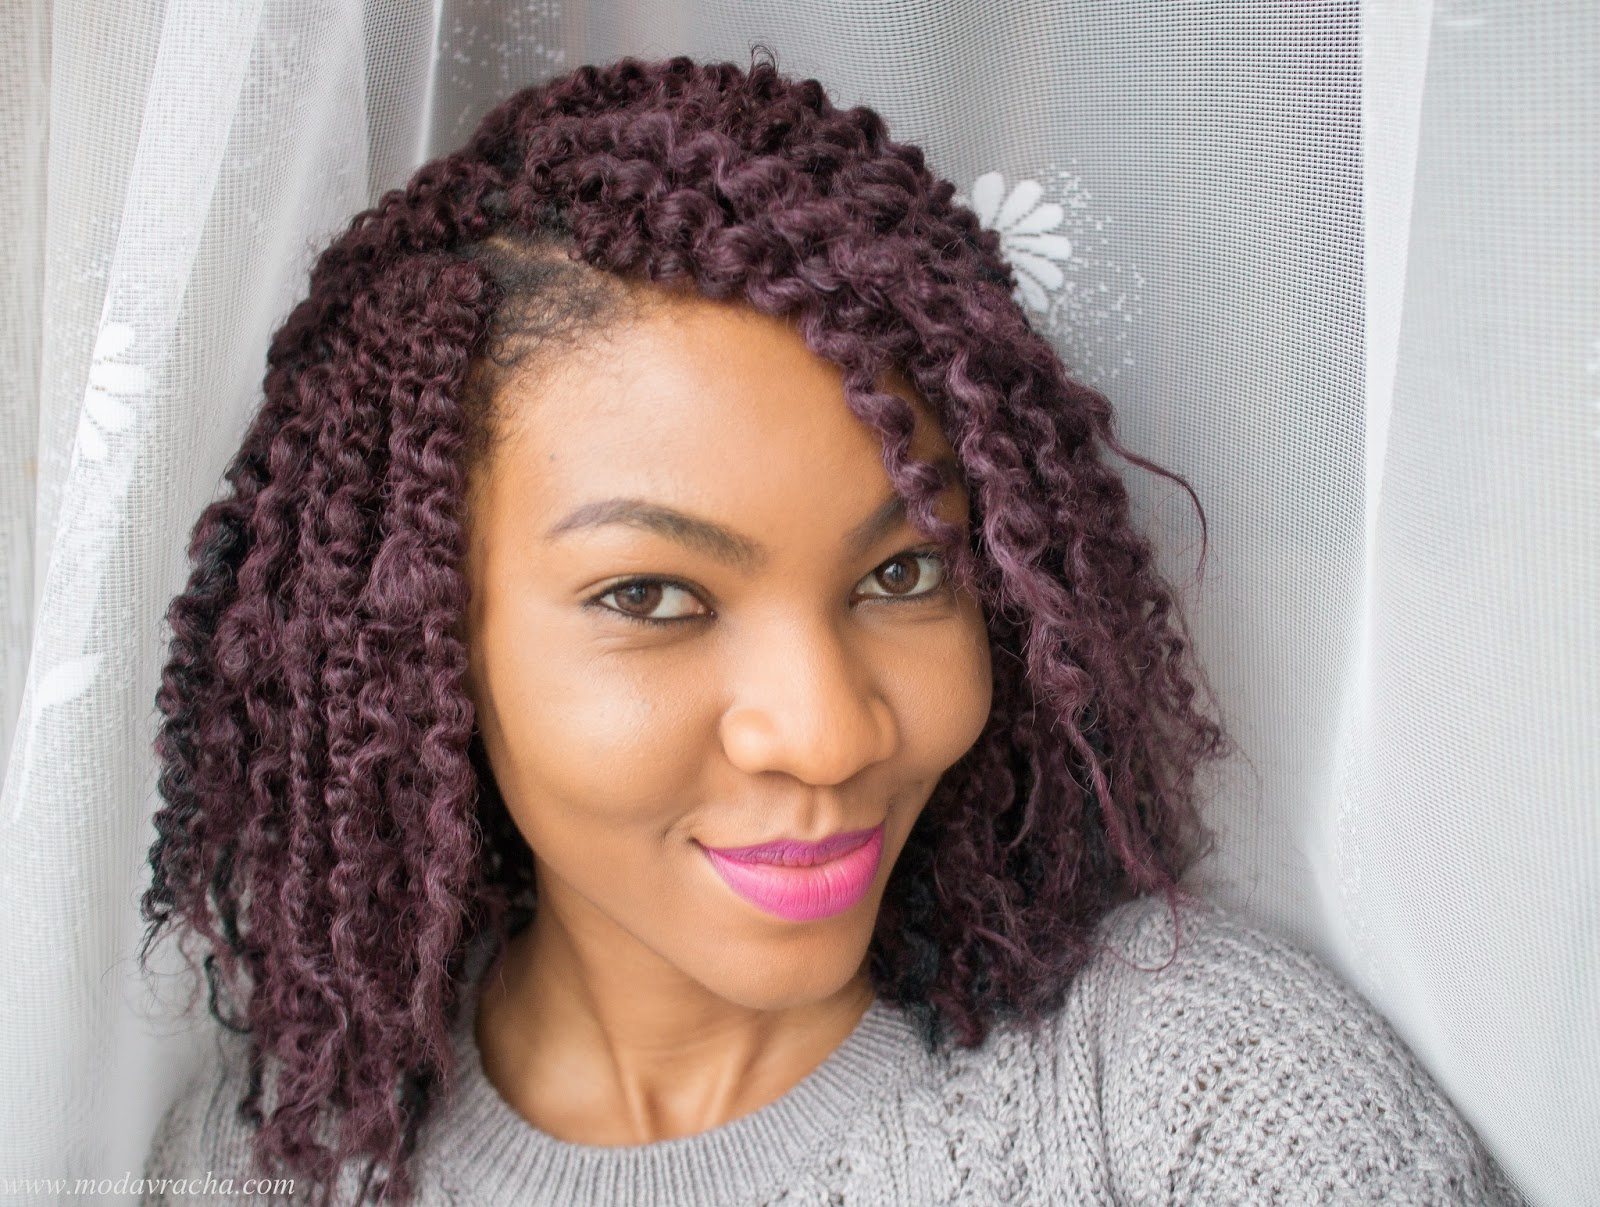 Modavracha crochet braids hairstyle with kinky bulk hair.